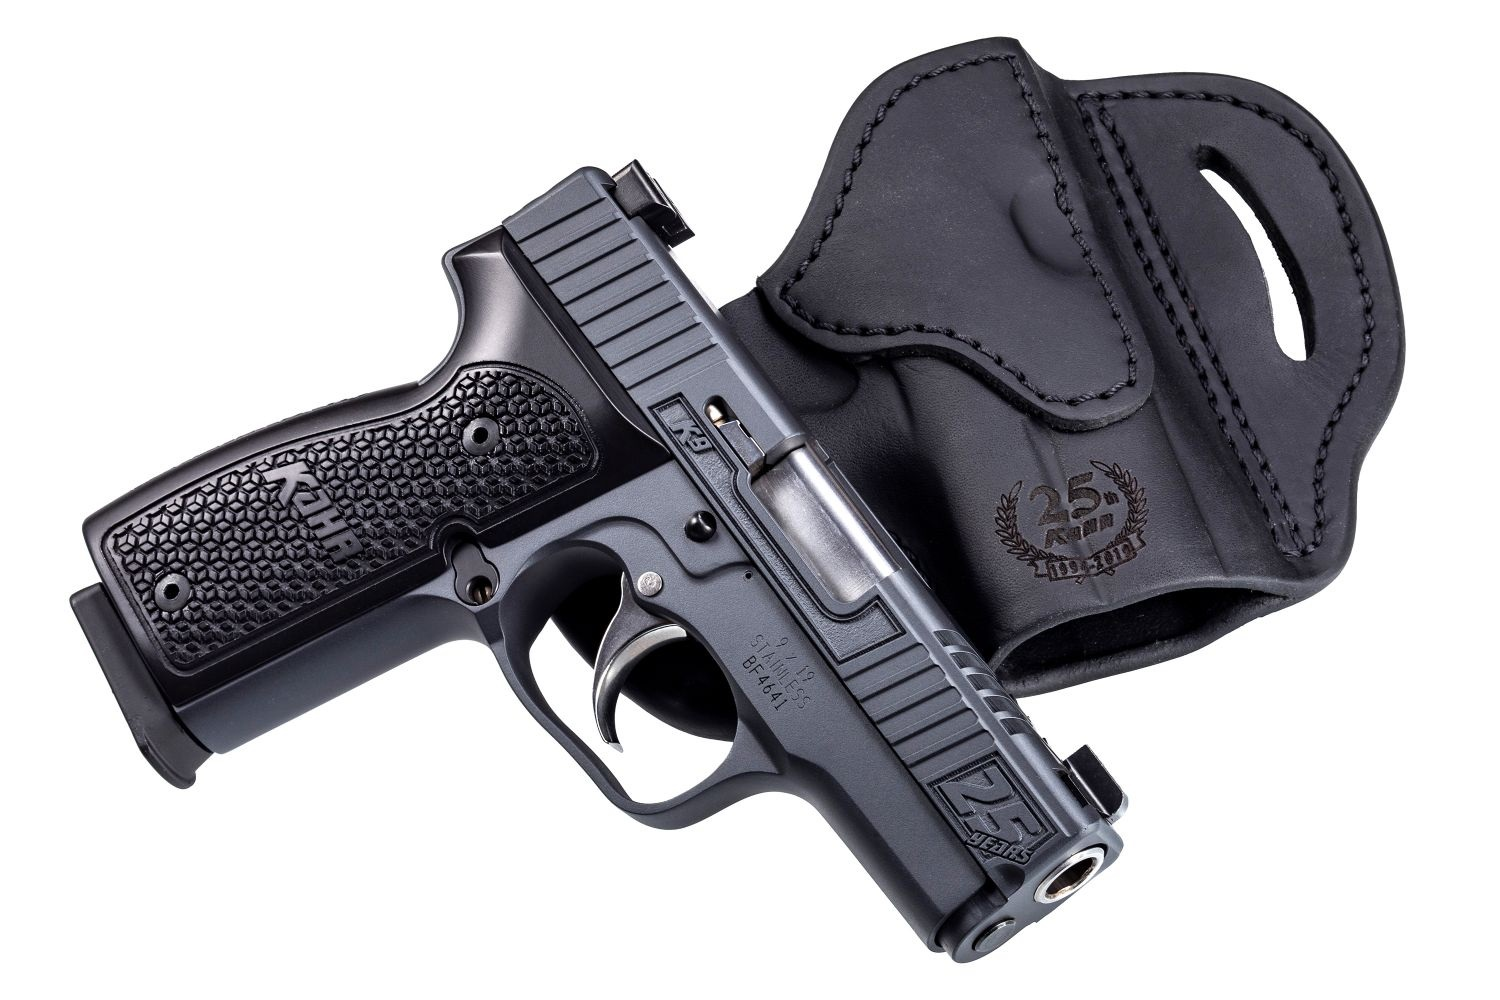 Kahr Arms K9 25TH ANNIVERSARY EDITION 9MM